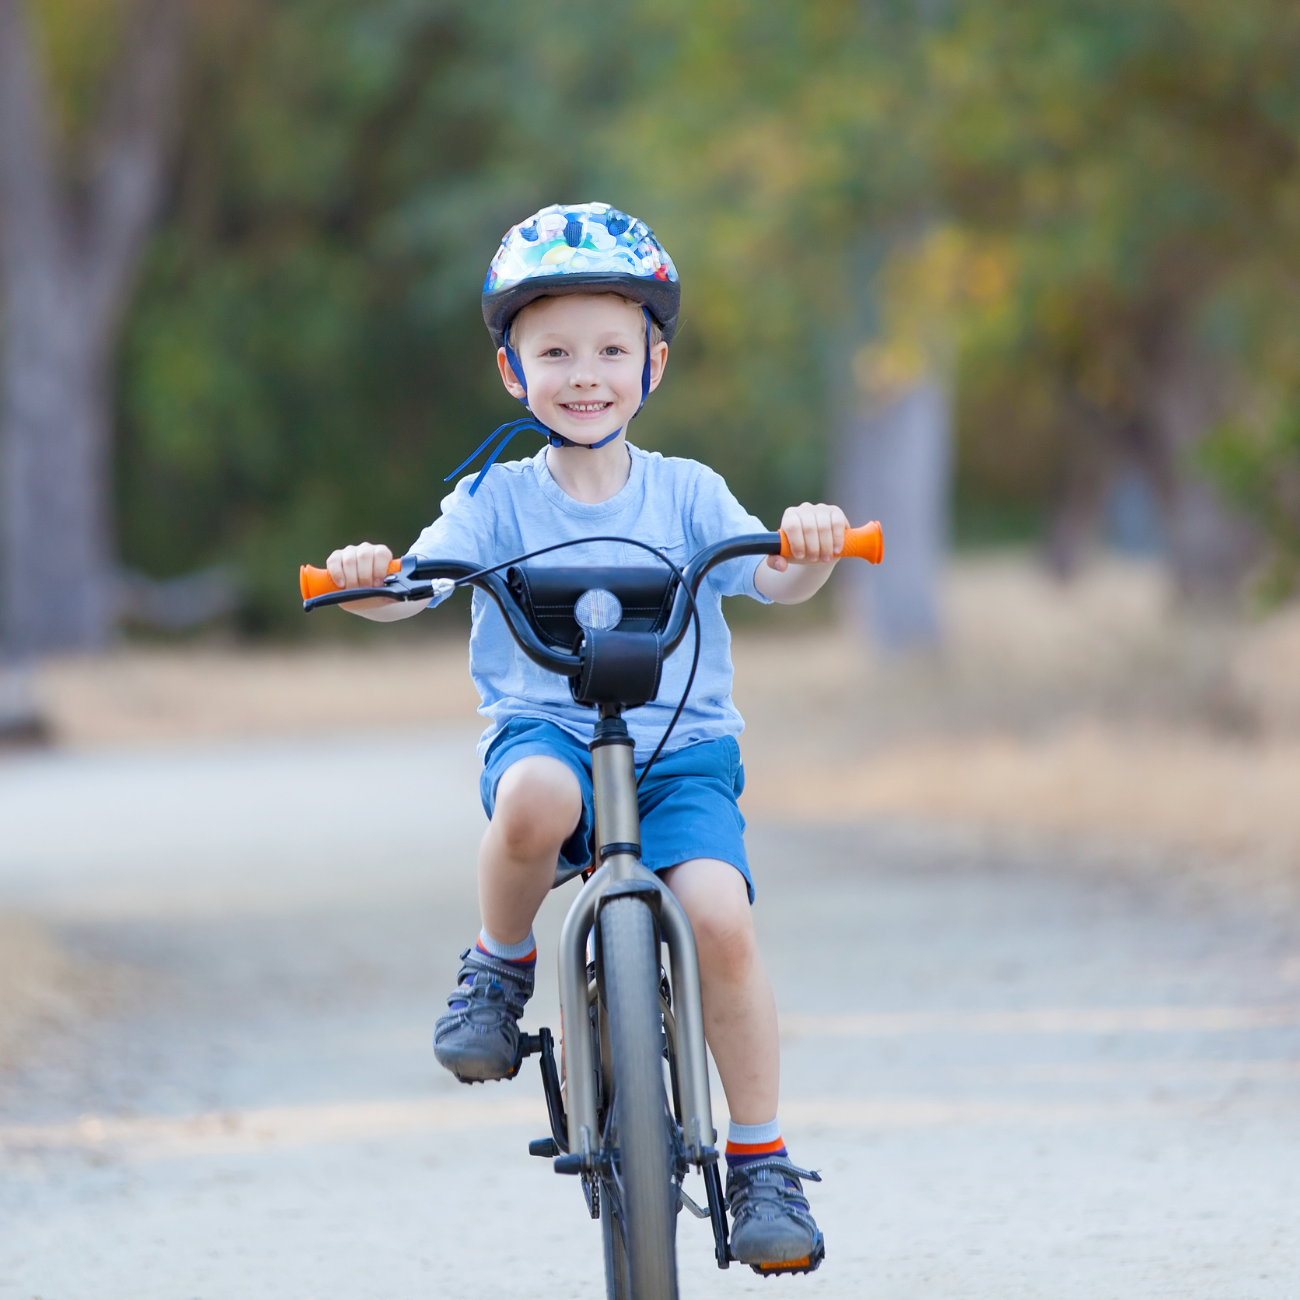 5 Fun Activities to Do With the Kids This Summer